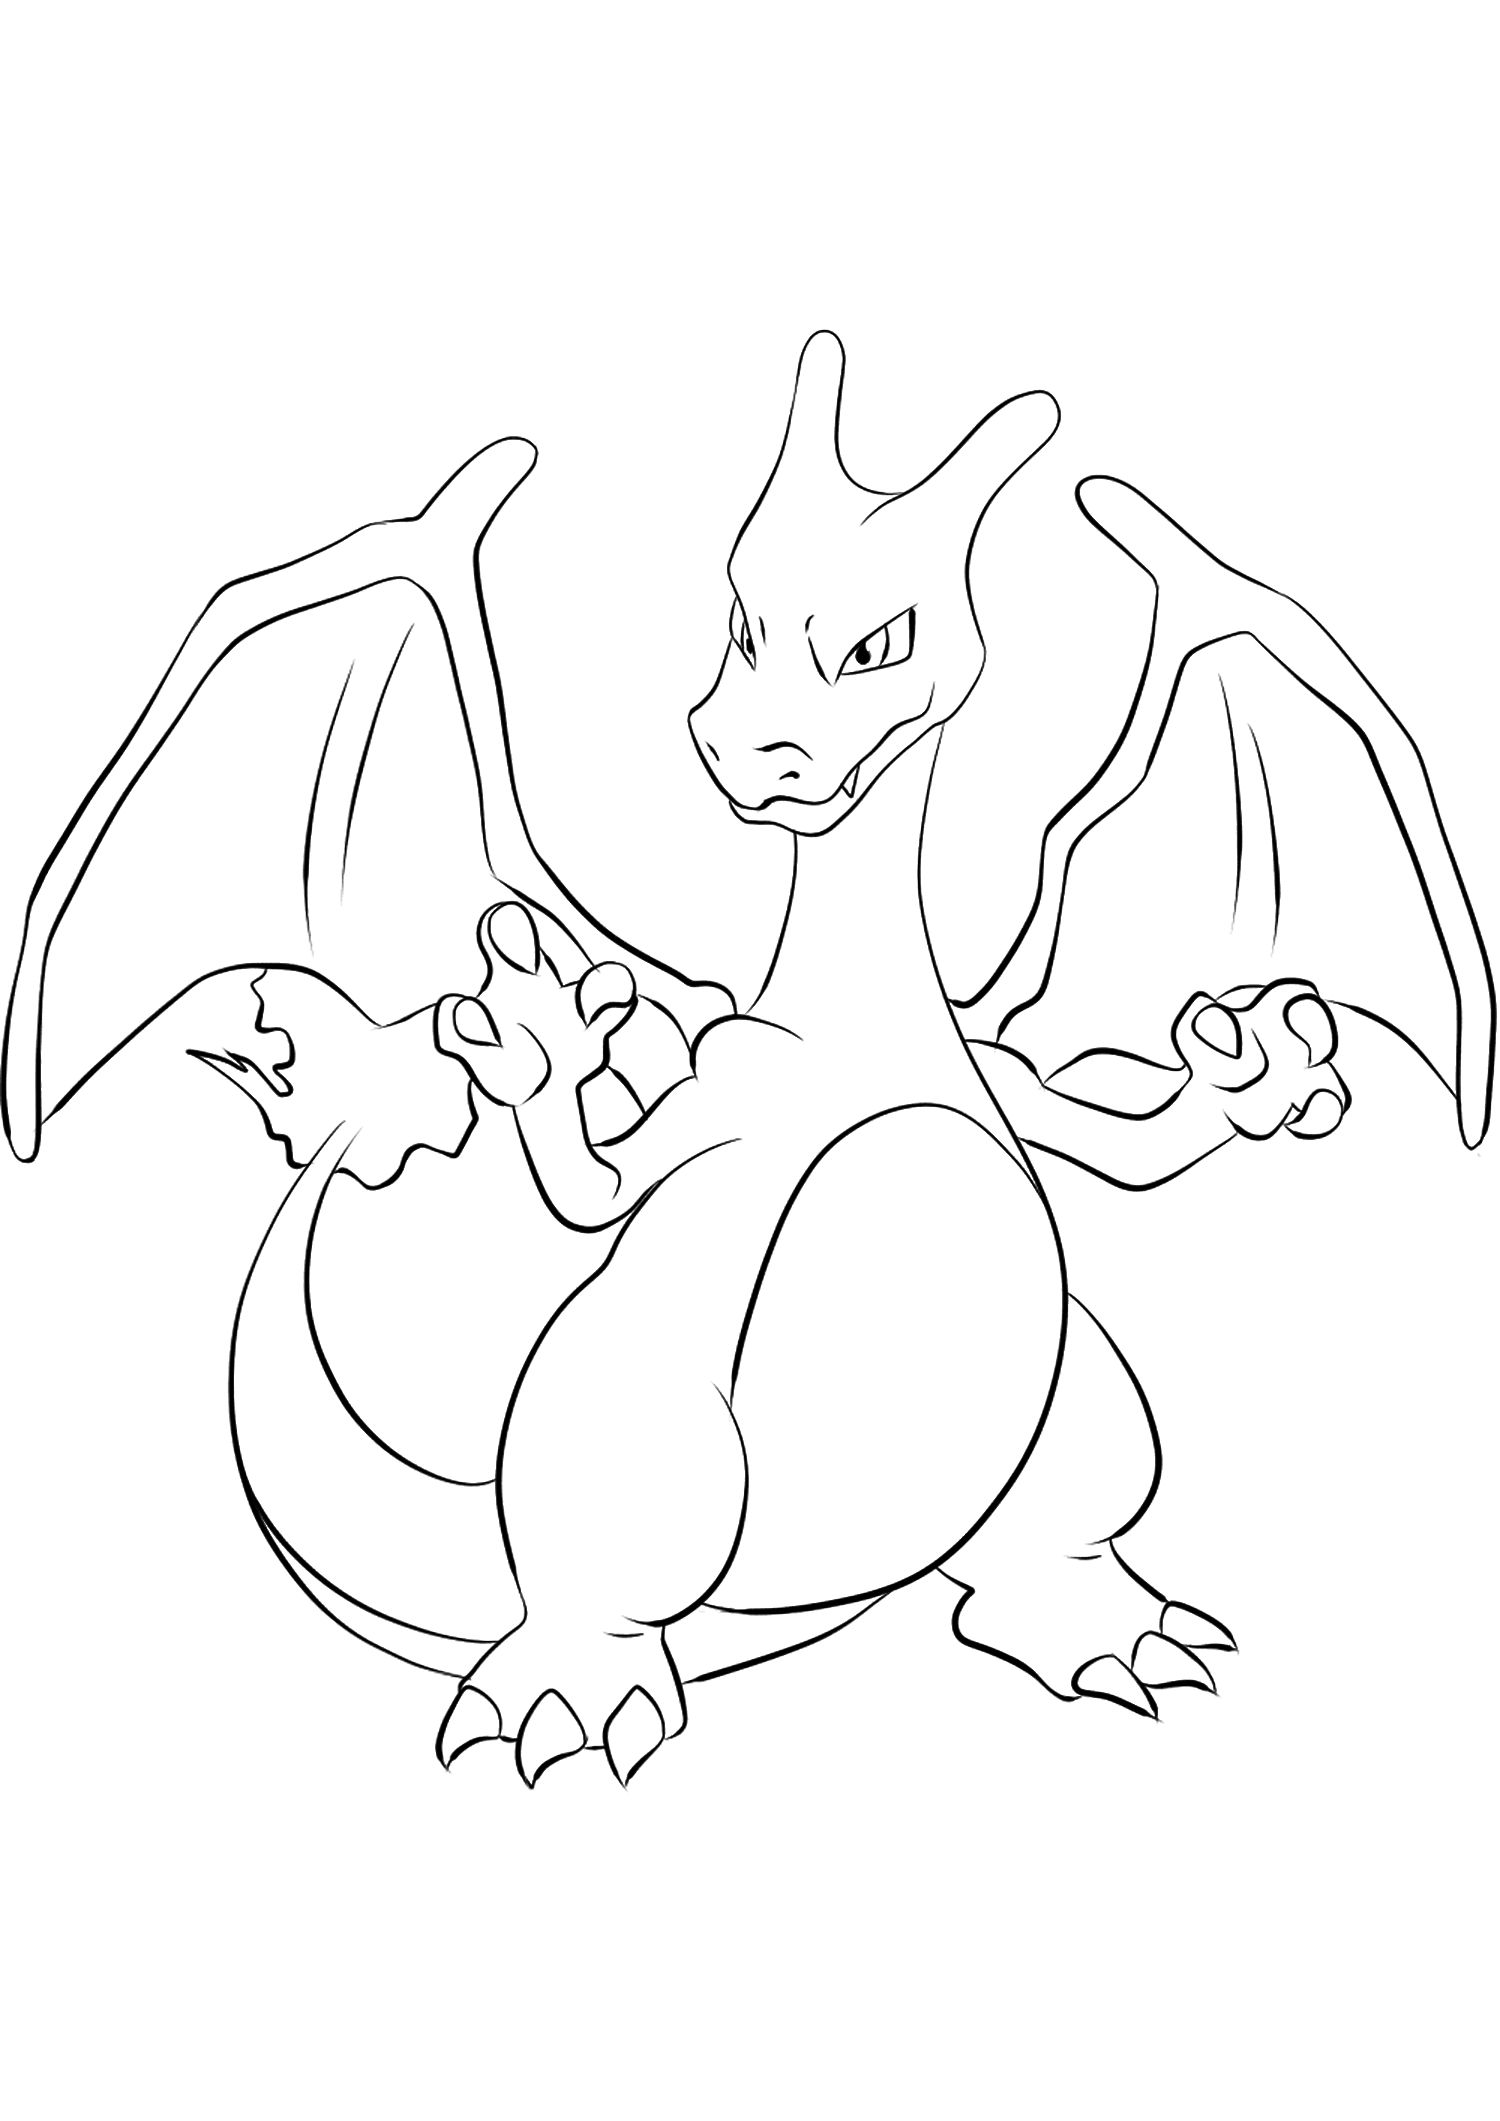 Image result for mega Charizard x colouring sheets | Pokemon ... | 2121x1500